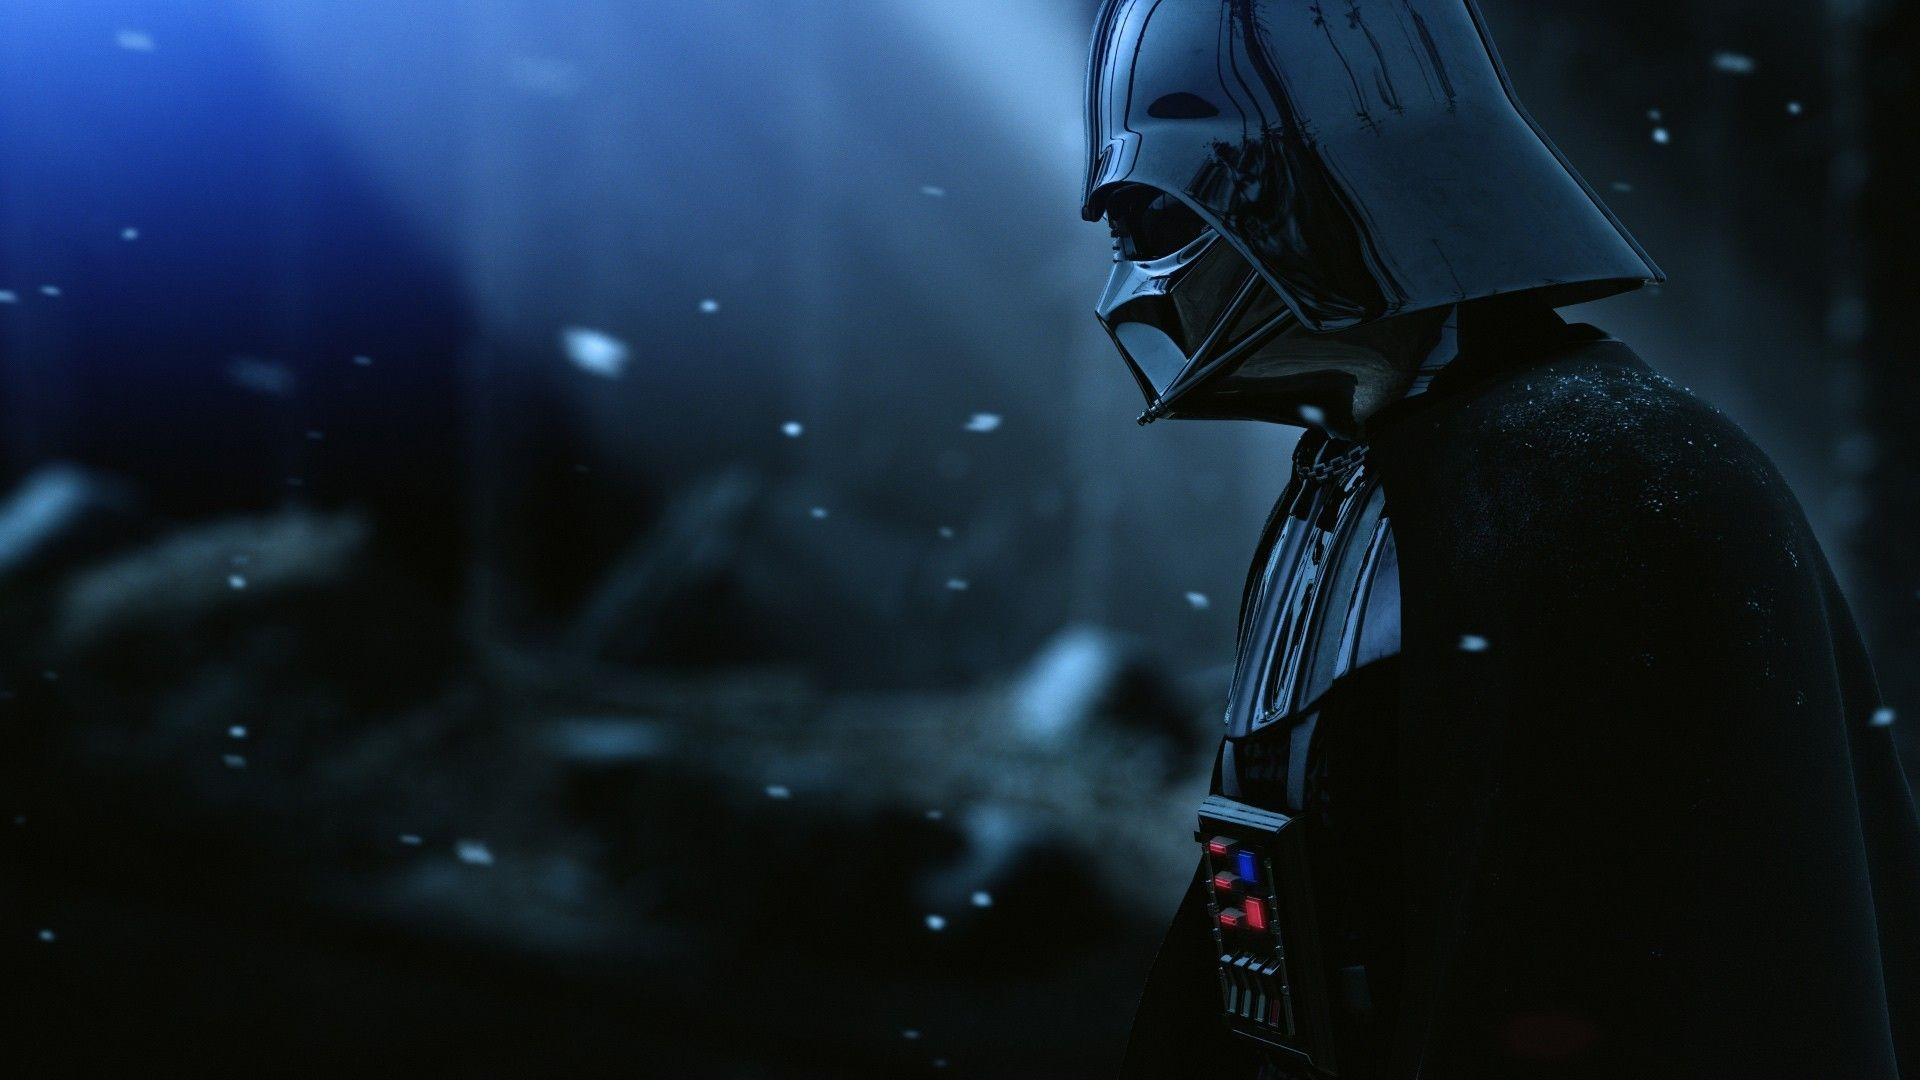 hd star wars wallpaper ·① download free awesome backgrounds for